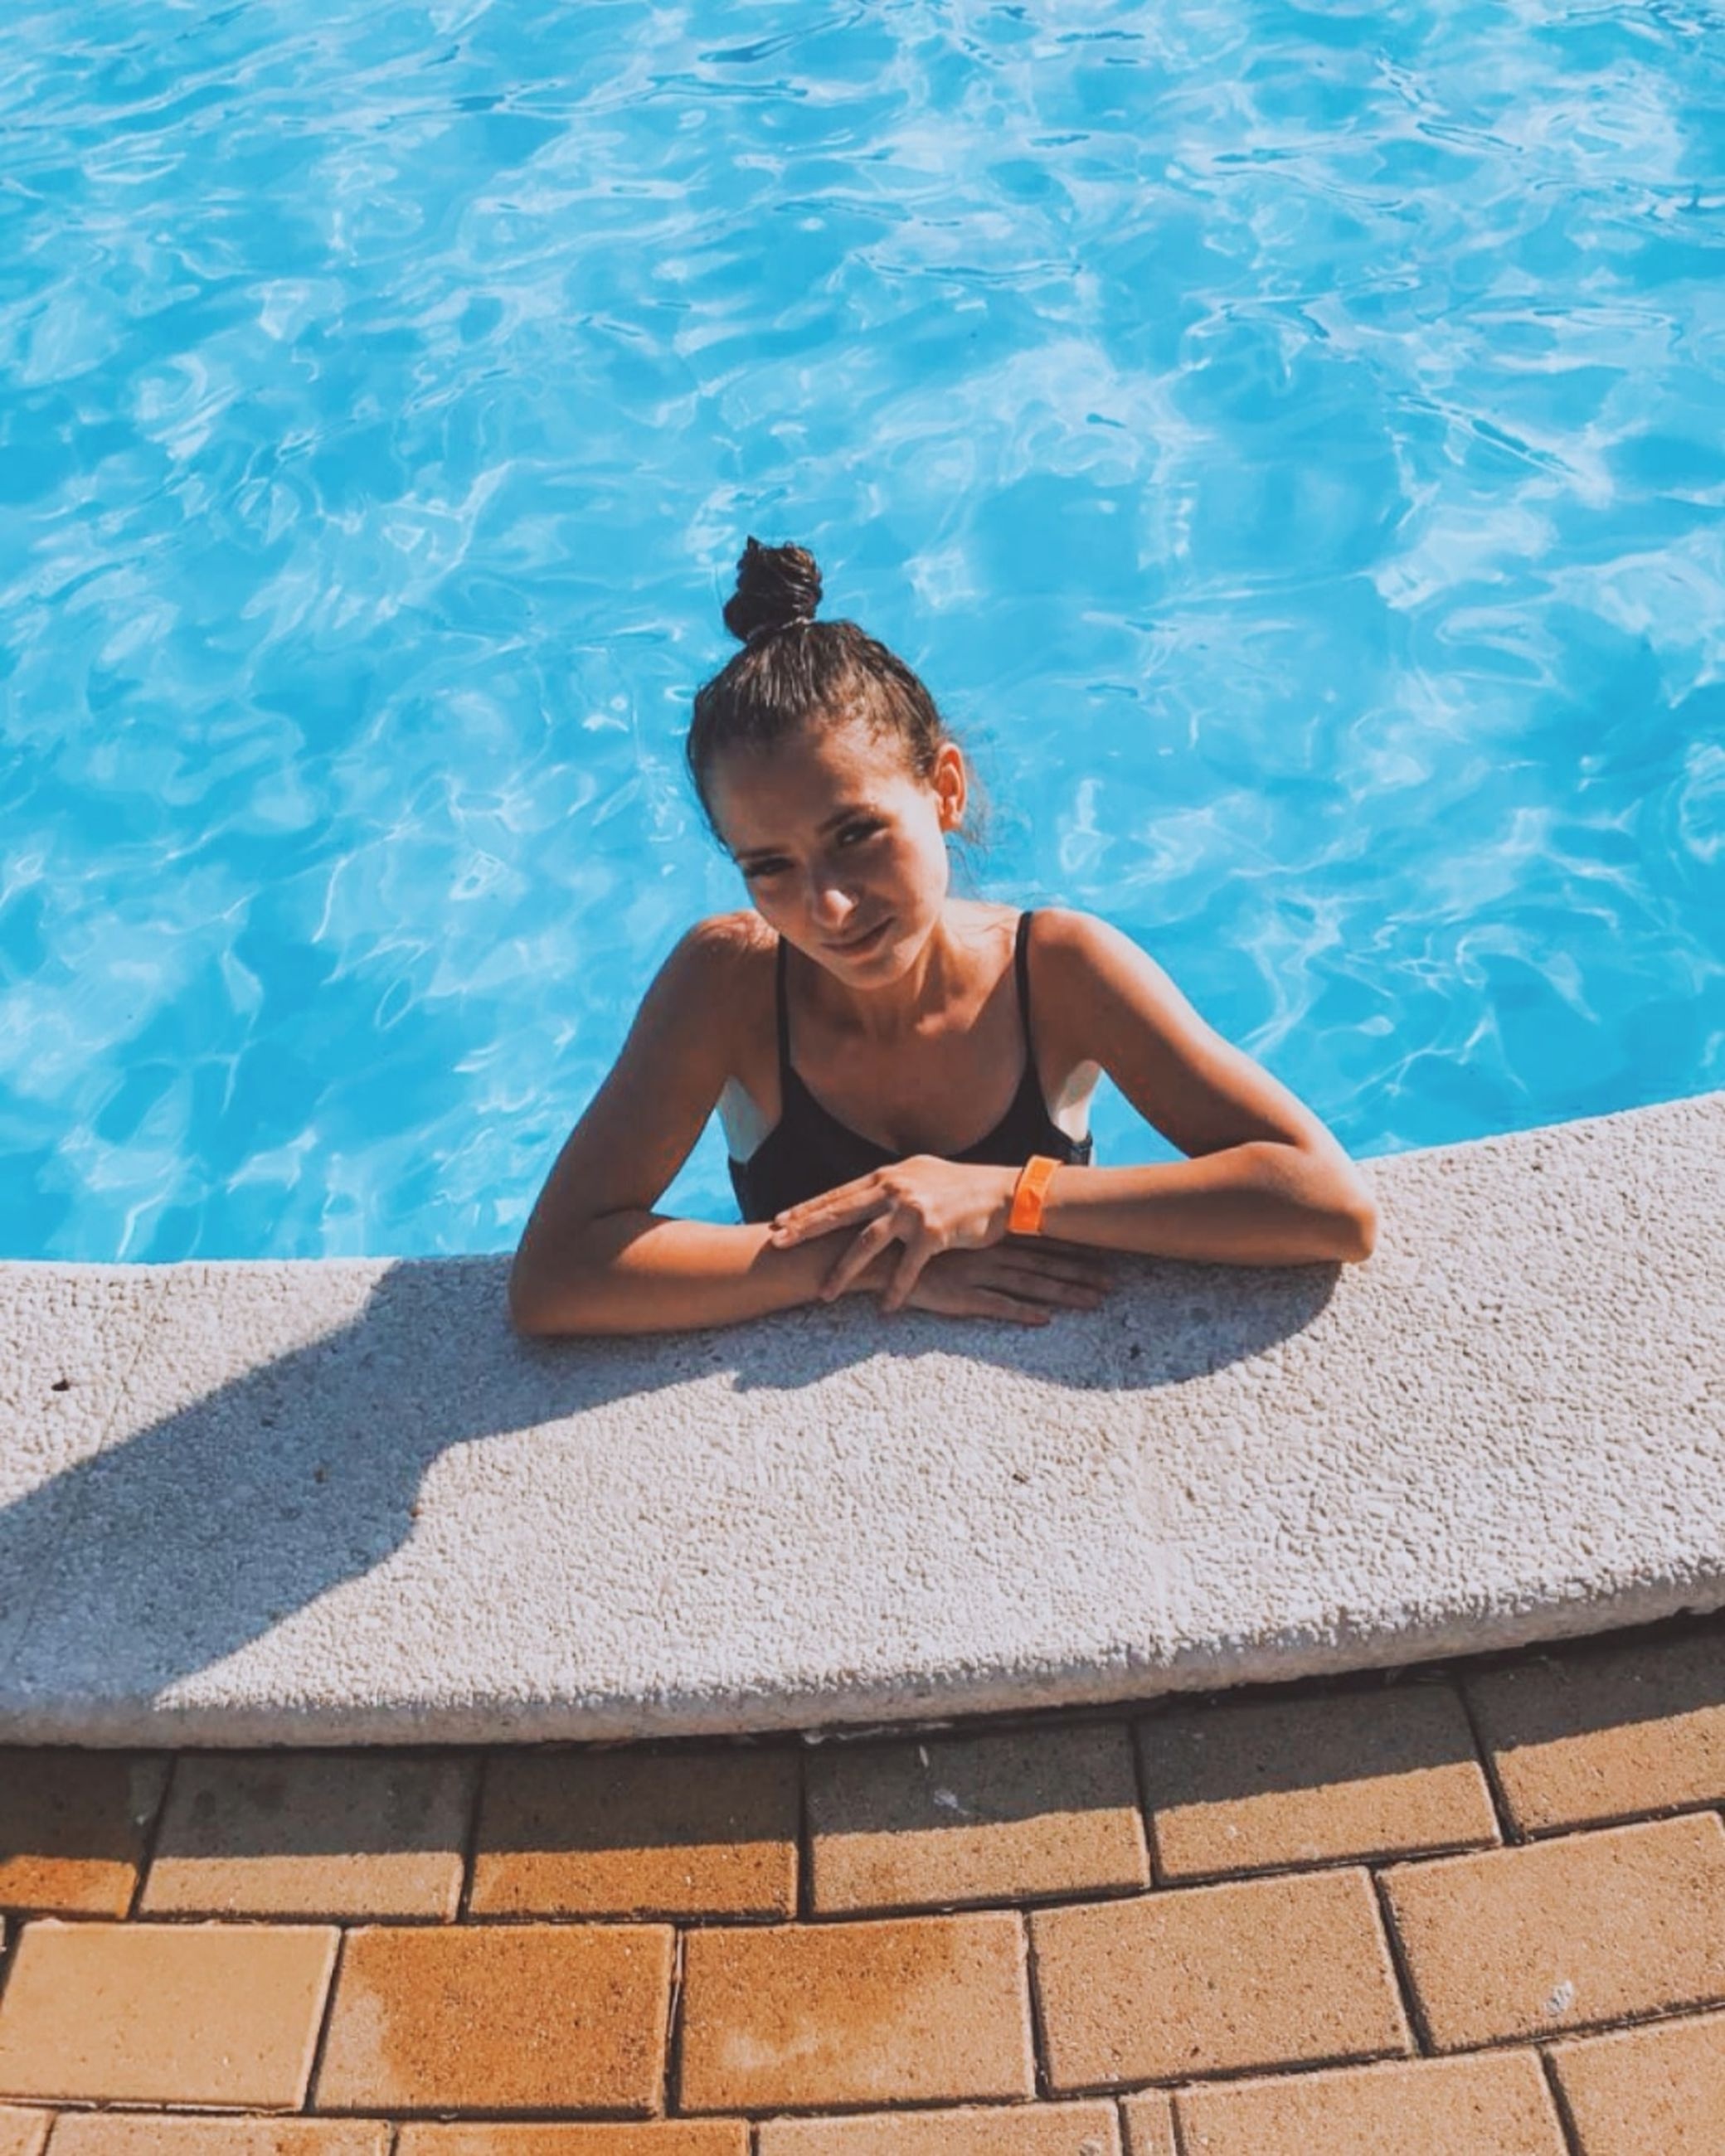 water, one person, leisure activity, high angle view, real people, lifestyles, nature, pool, child, sunlight, front view, swimming pool, day, childhood, swimwear, boys, portrait, outdoors